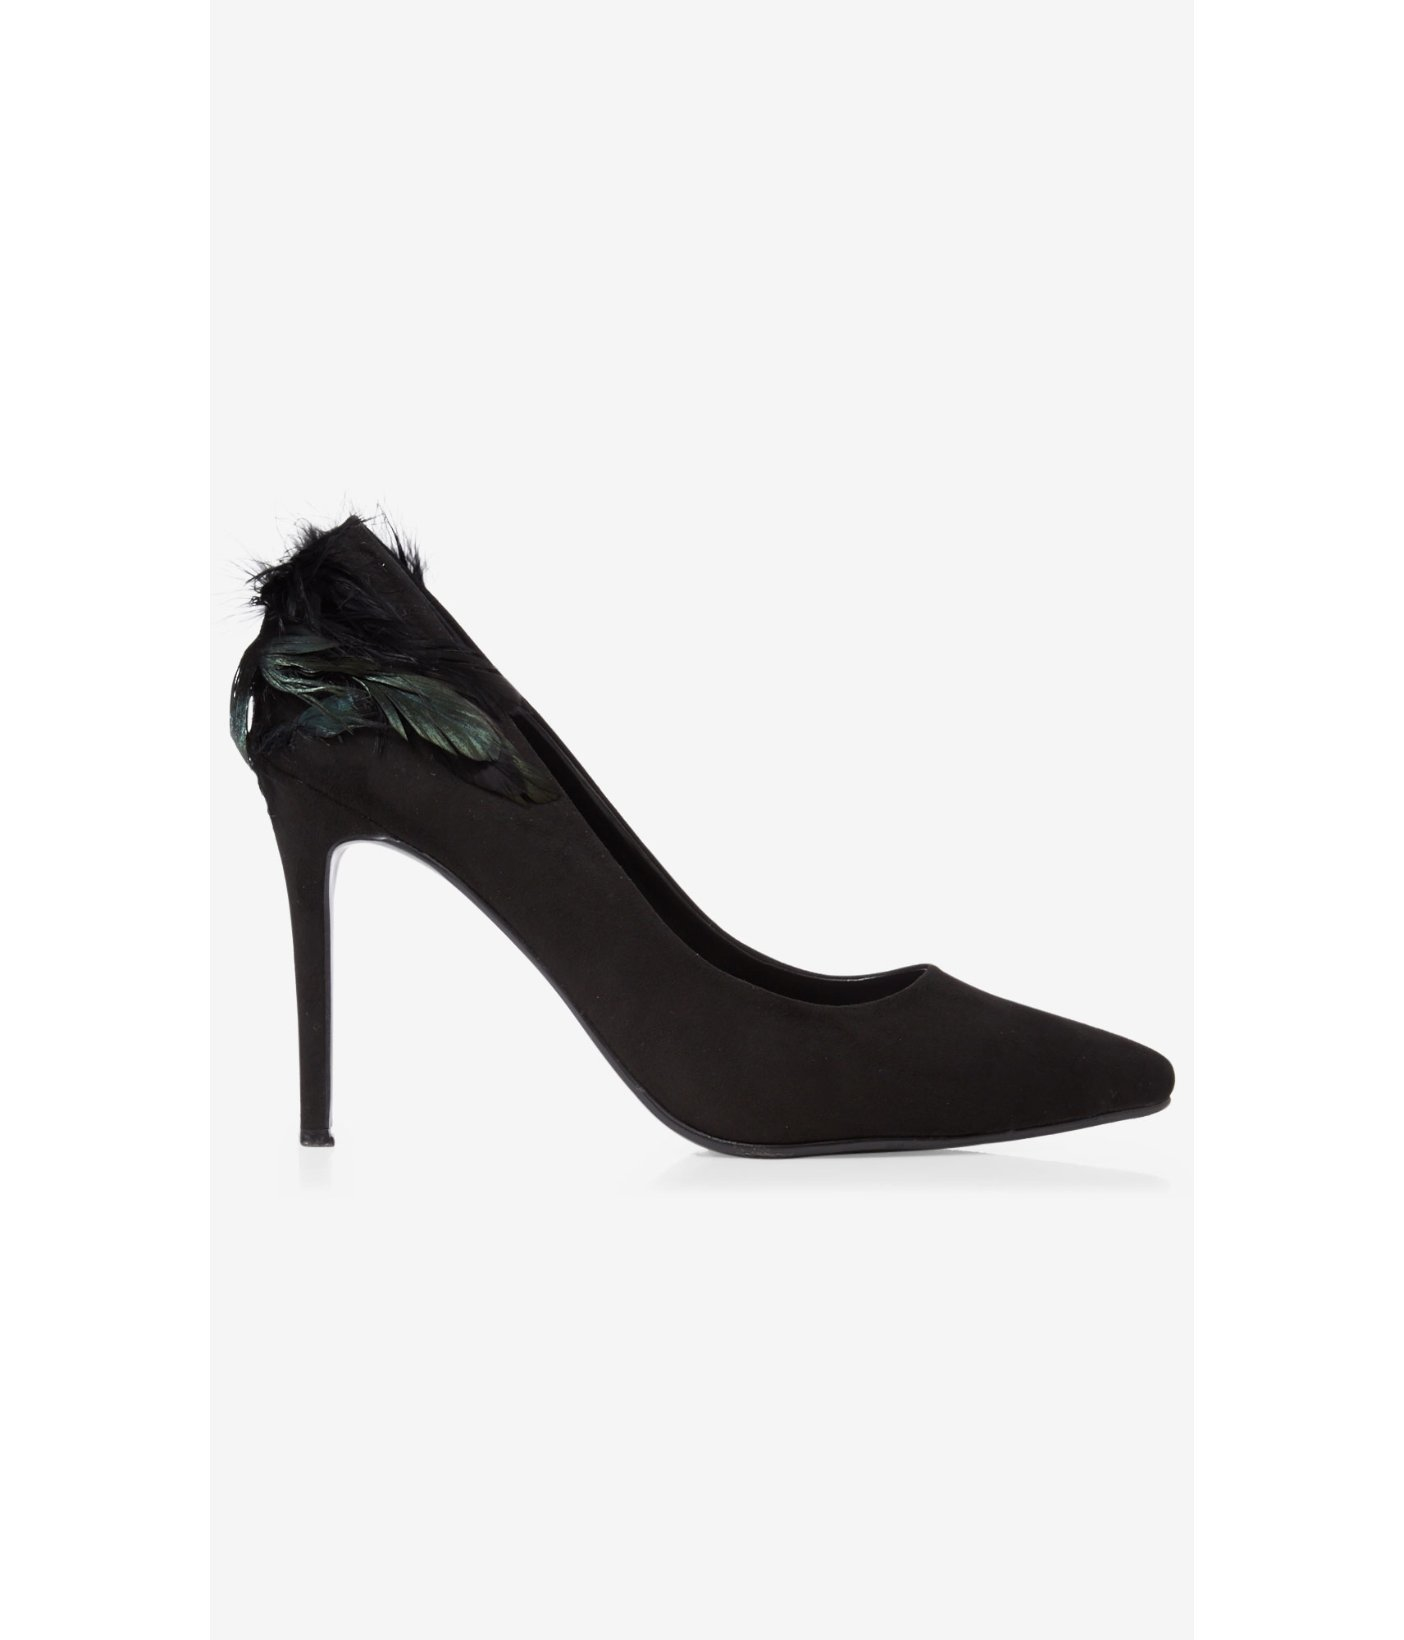 a12236eea76 Express Feather Embellished Faux Suede Pump in Black - Lyst